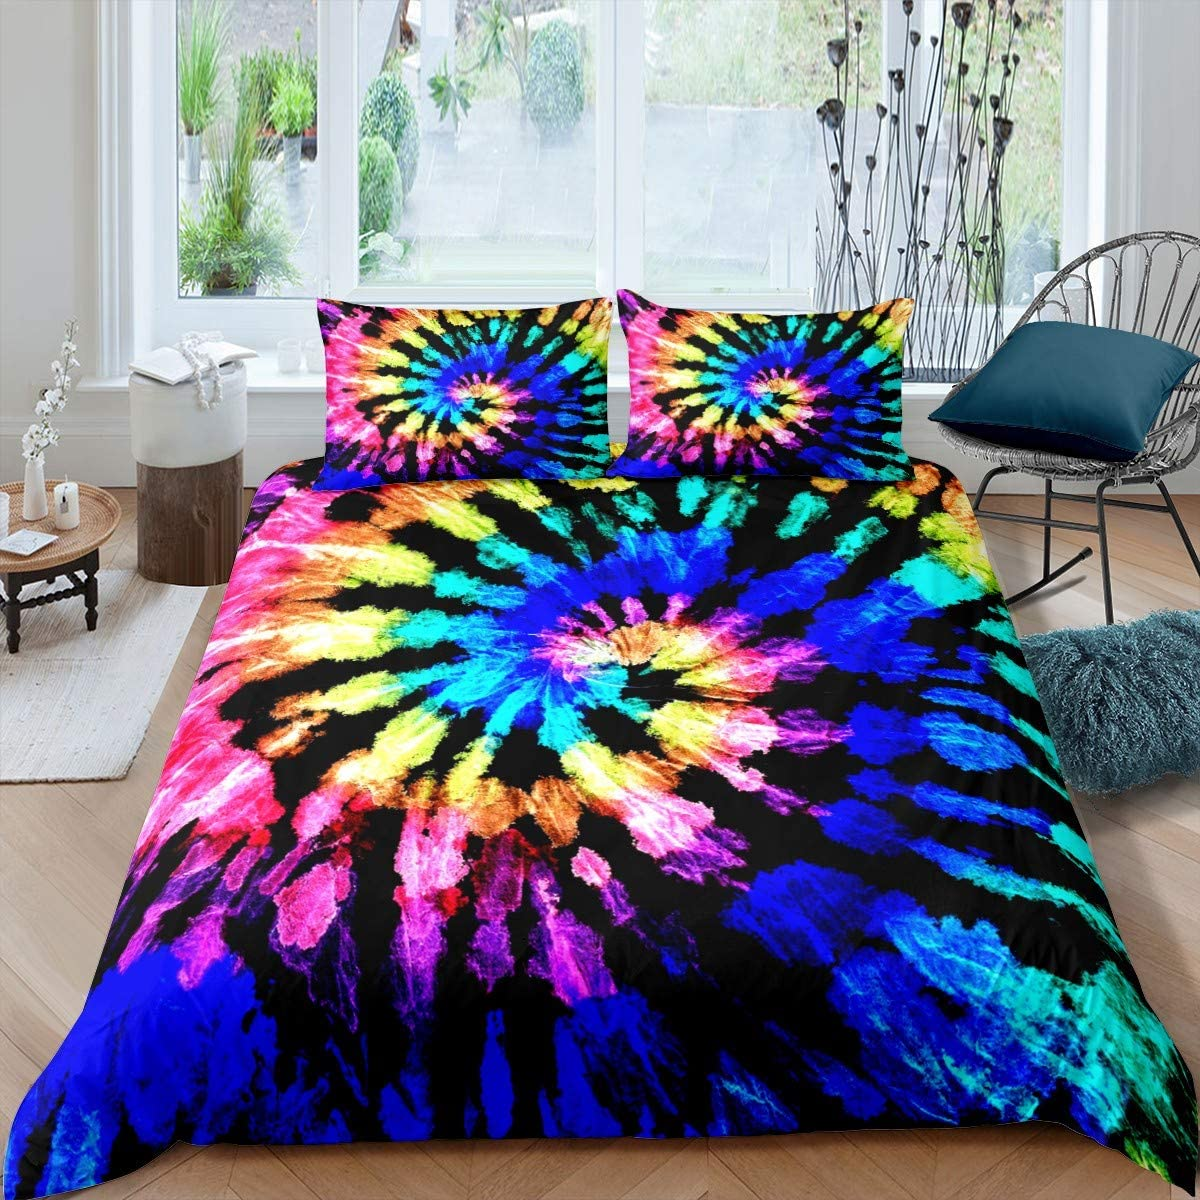 Feelyou Boho Psychedelic Duvet Cover Set for Kids Girls Adults Colorful Tie Dye Bedding Set Kids Bohemian Gypsy Comforter Cover Set Exotic Tribal Style Quilt Cover Room Decor 3Pcs Bedspread King Size